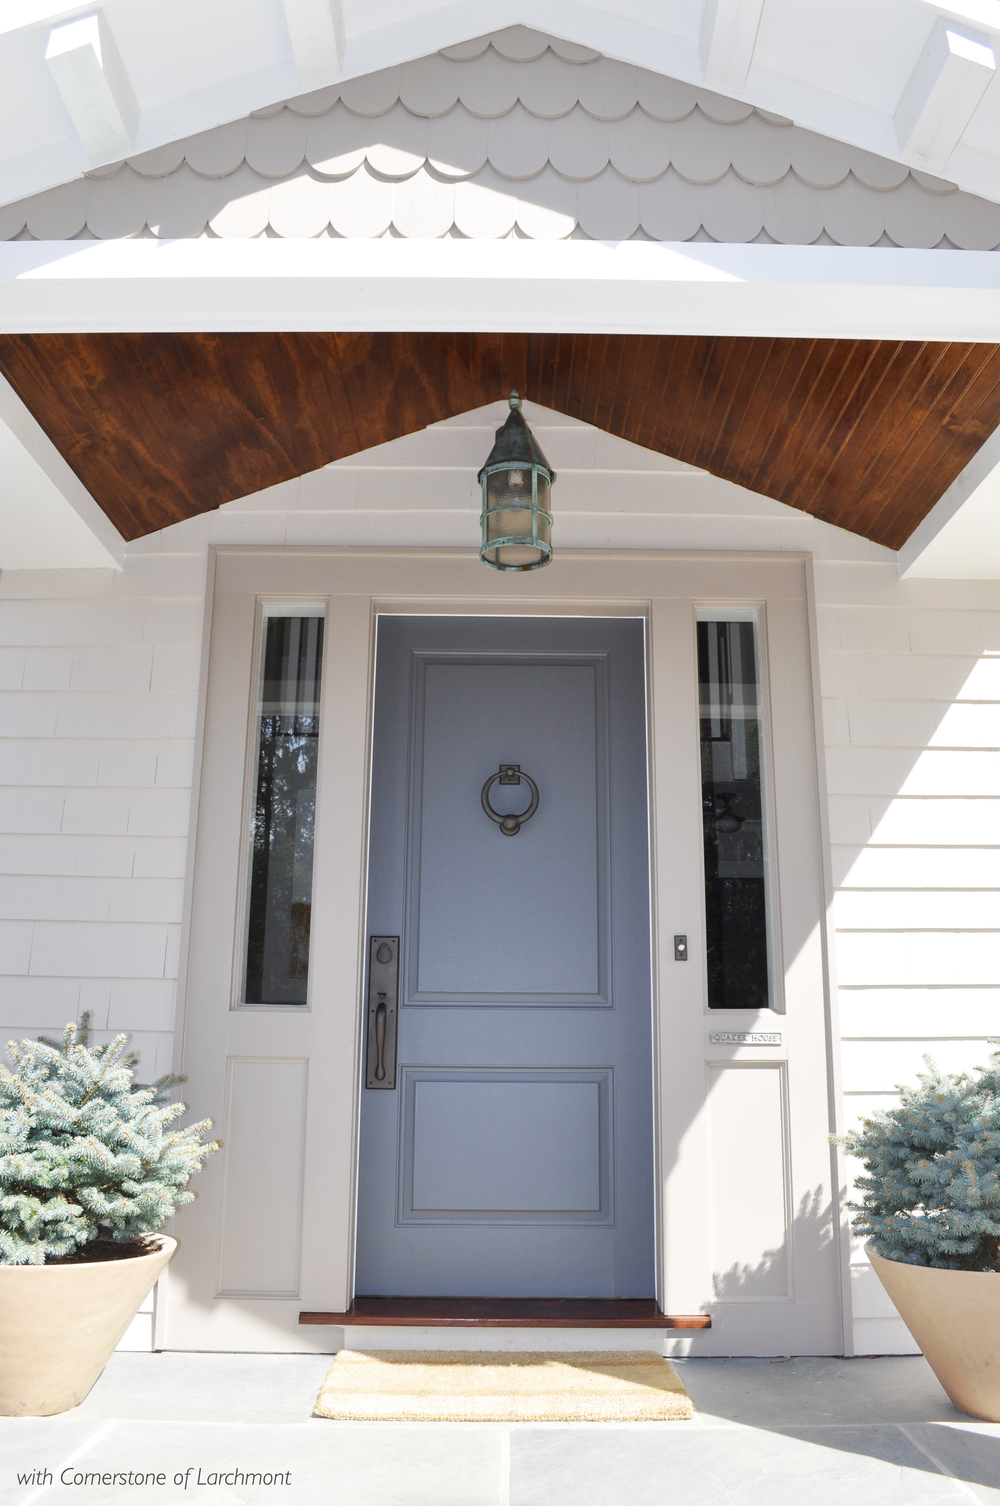 Residential Exterior_Front Door_Blue Door_Sidelights_Exterior Paint Colors_KAM DESIGN LLC.jpg